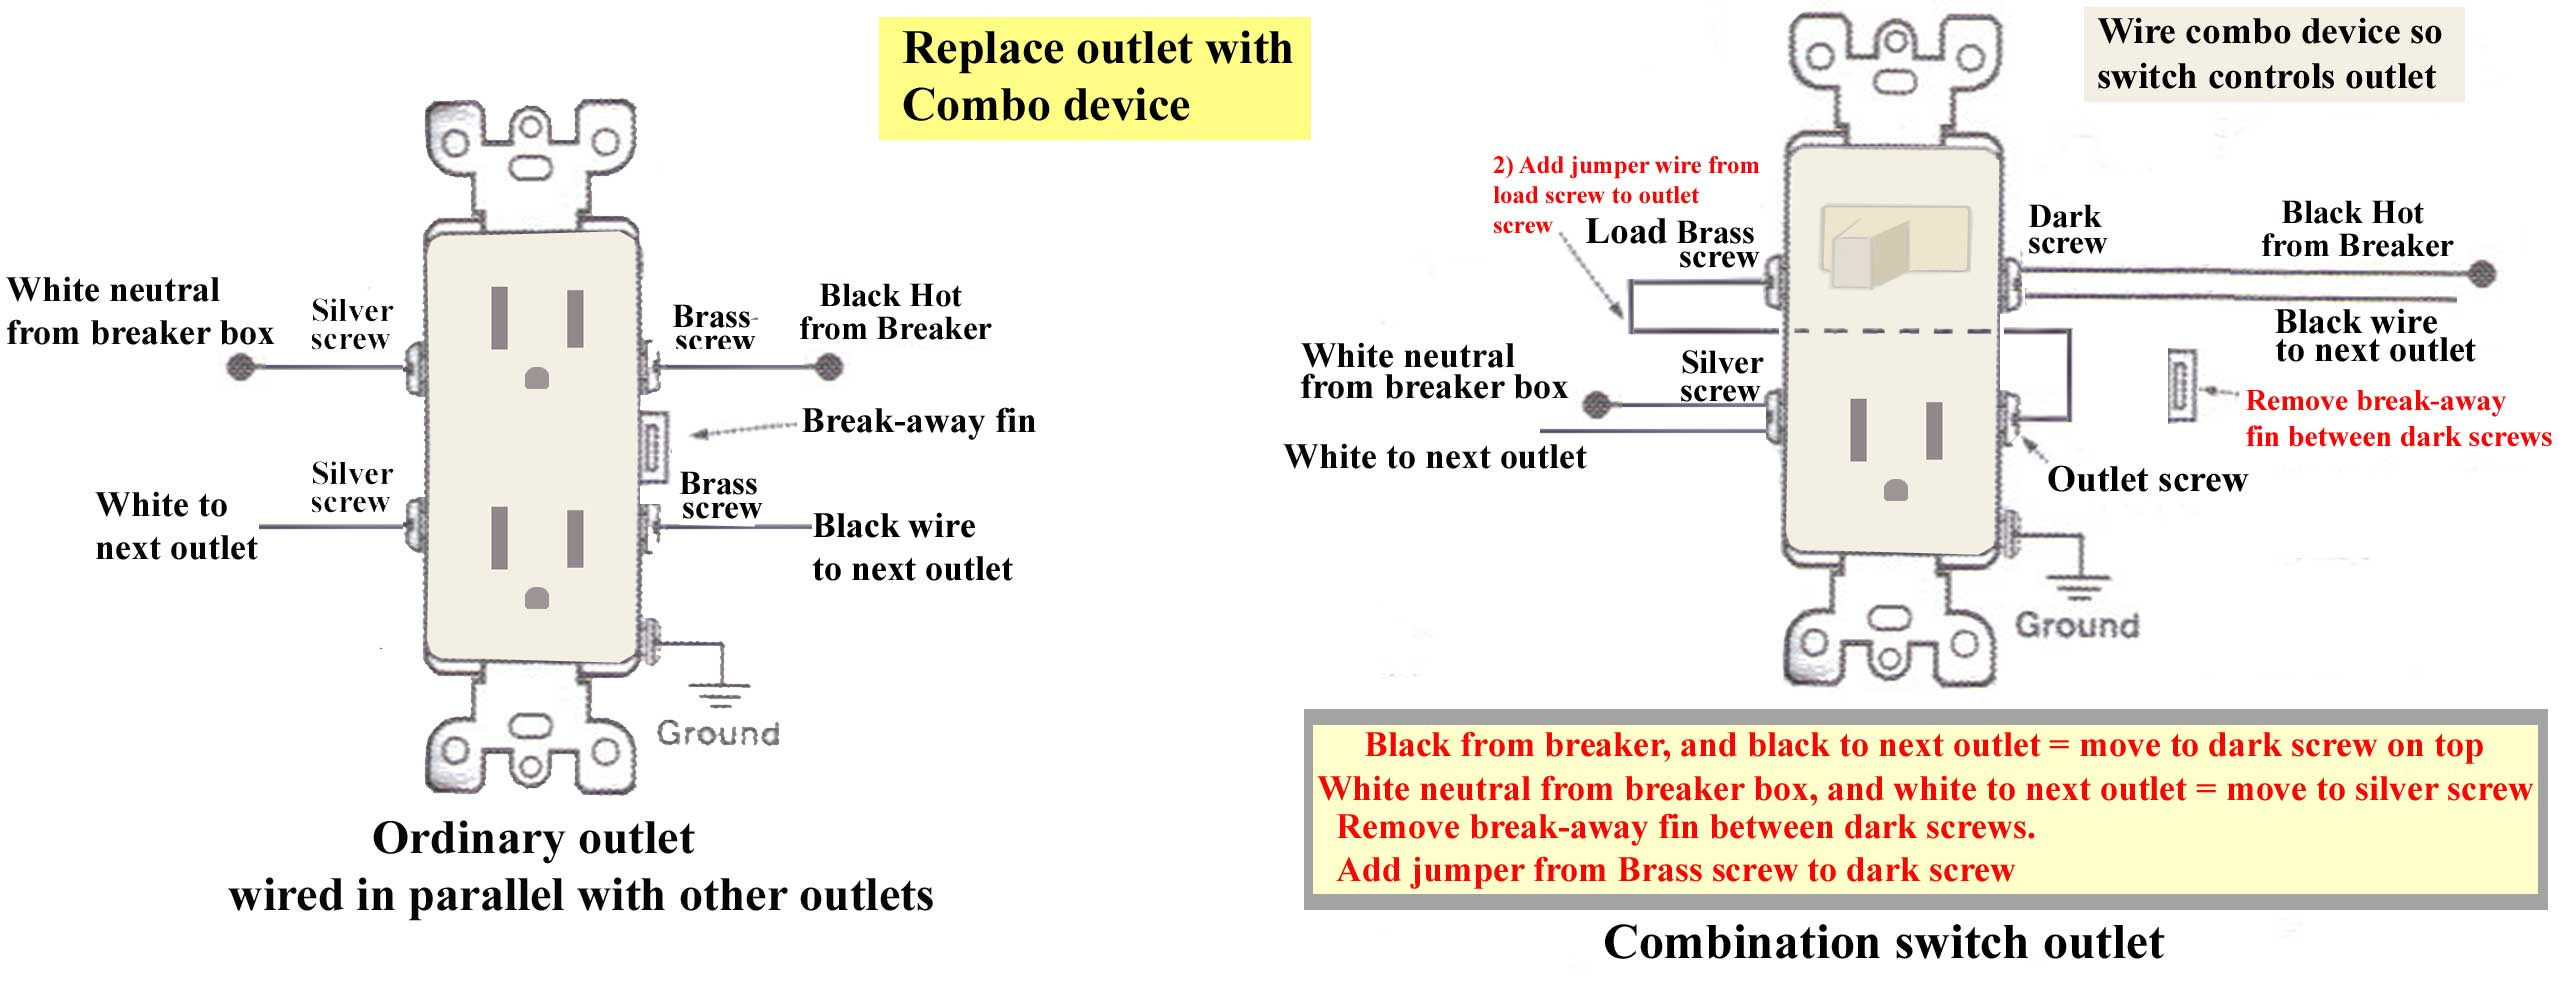 Leviton Light Switch Outlet Combination Wiring Diagram | Wiring Diagram - Light Switch Outlet Combo Wiring Diagram